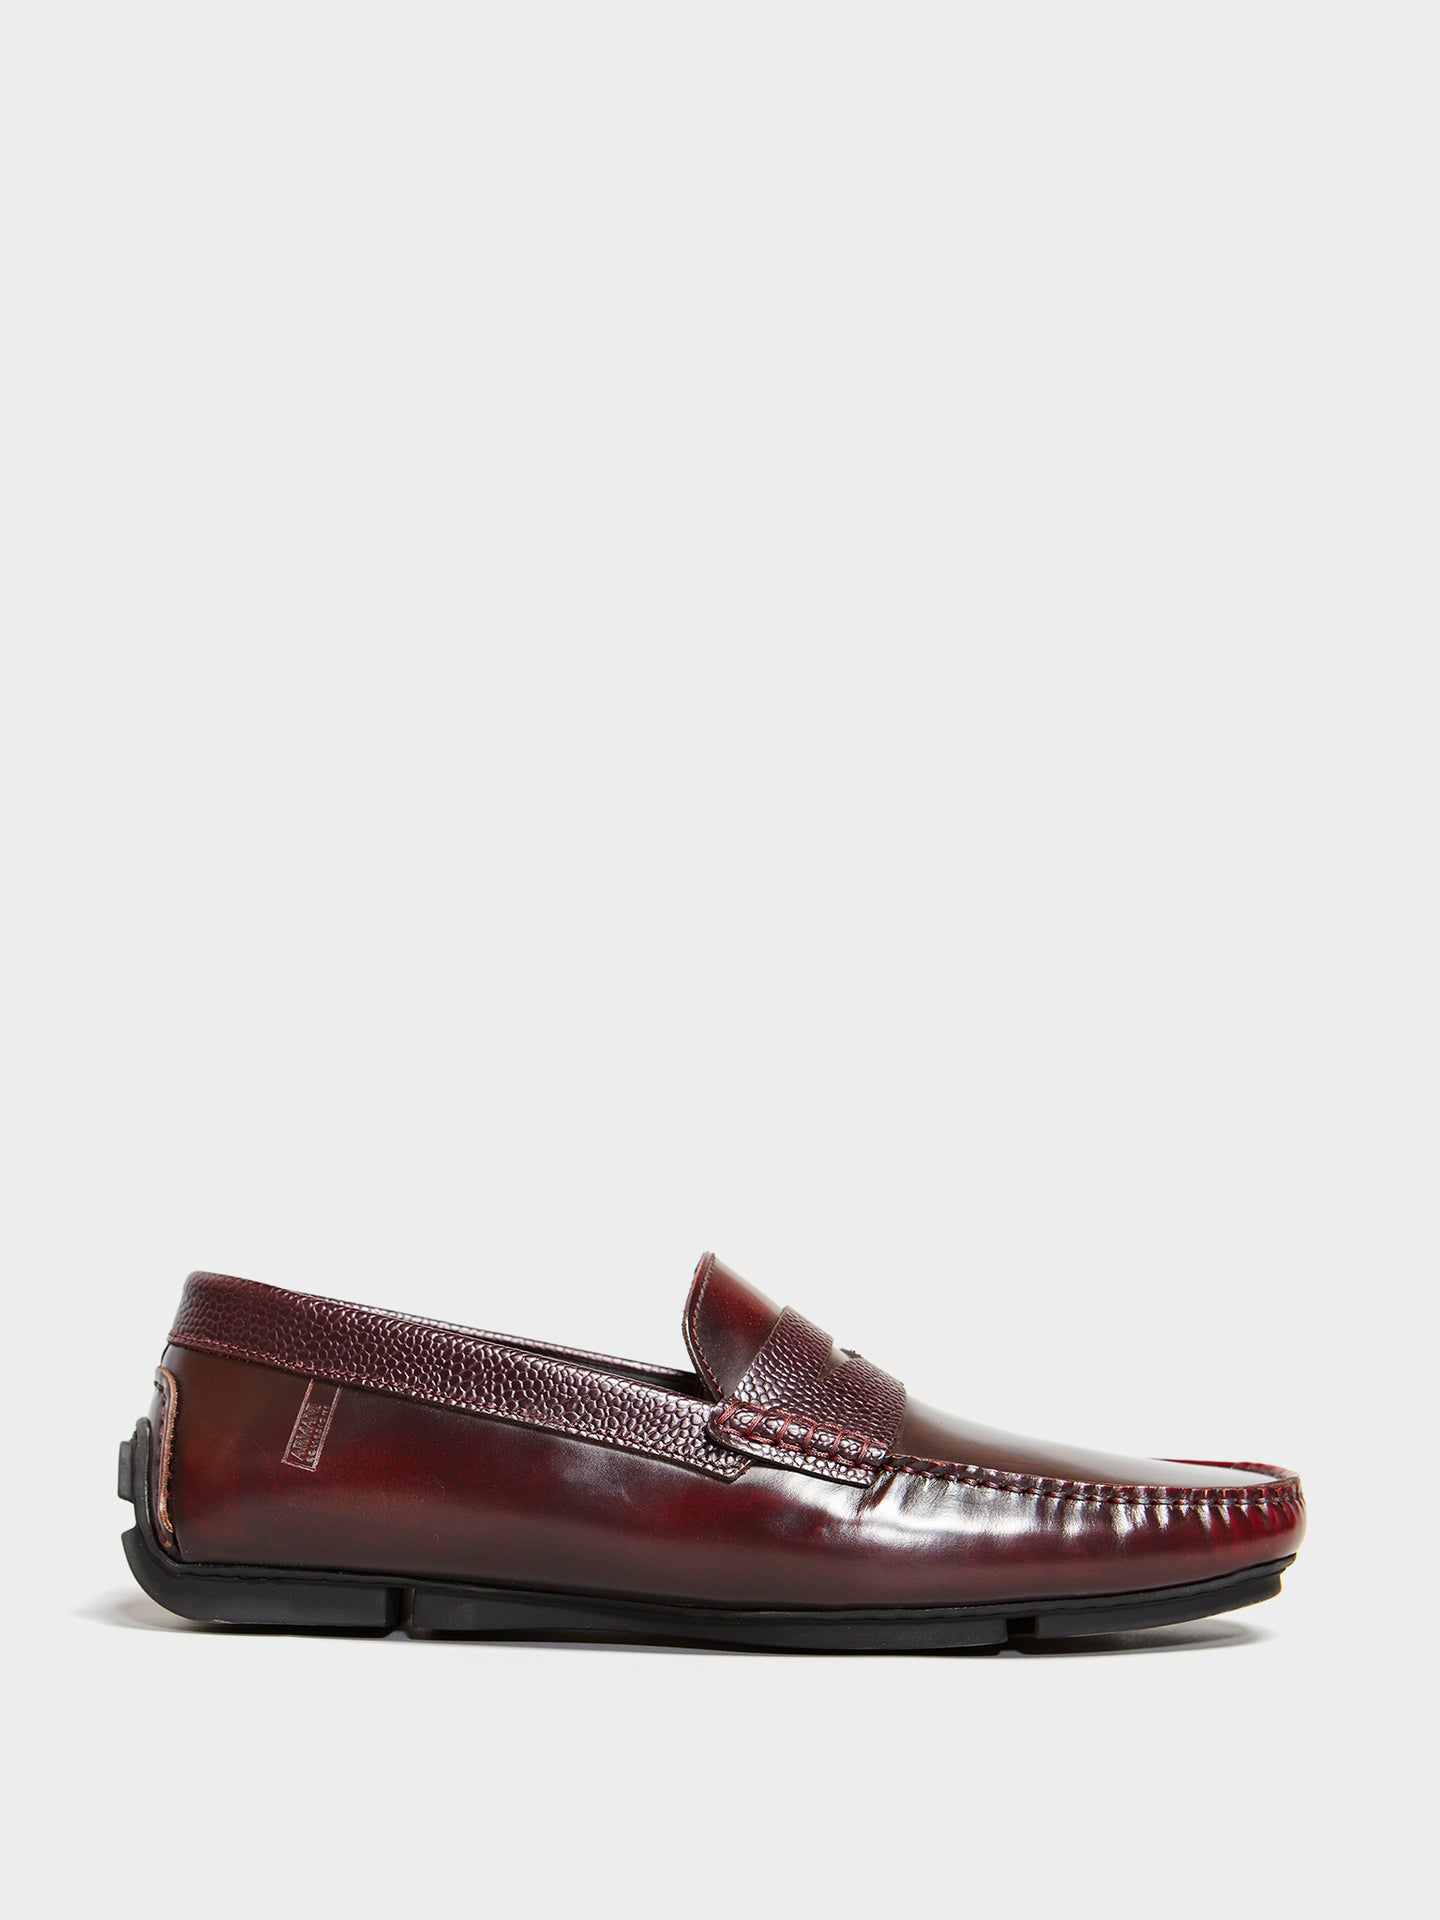 Armani Driving Shoe (Bordeaux)